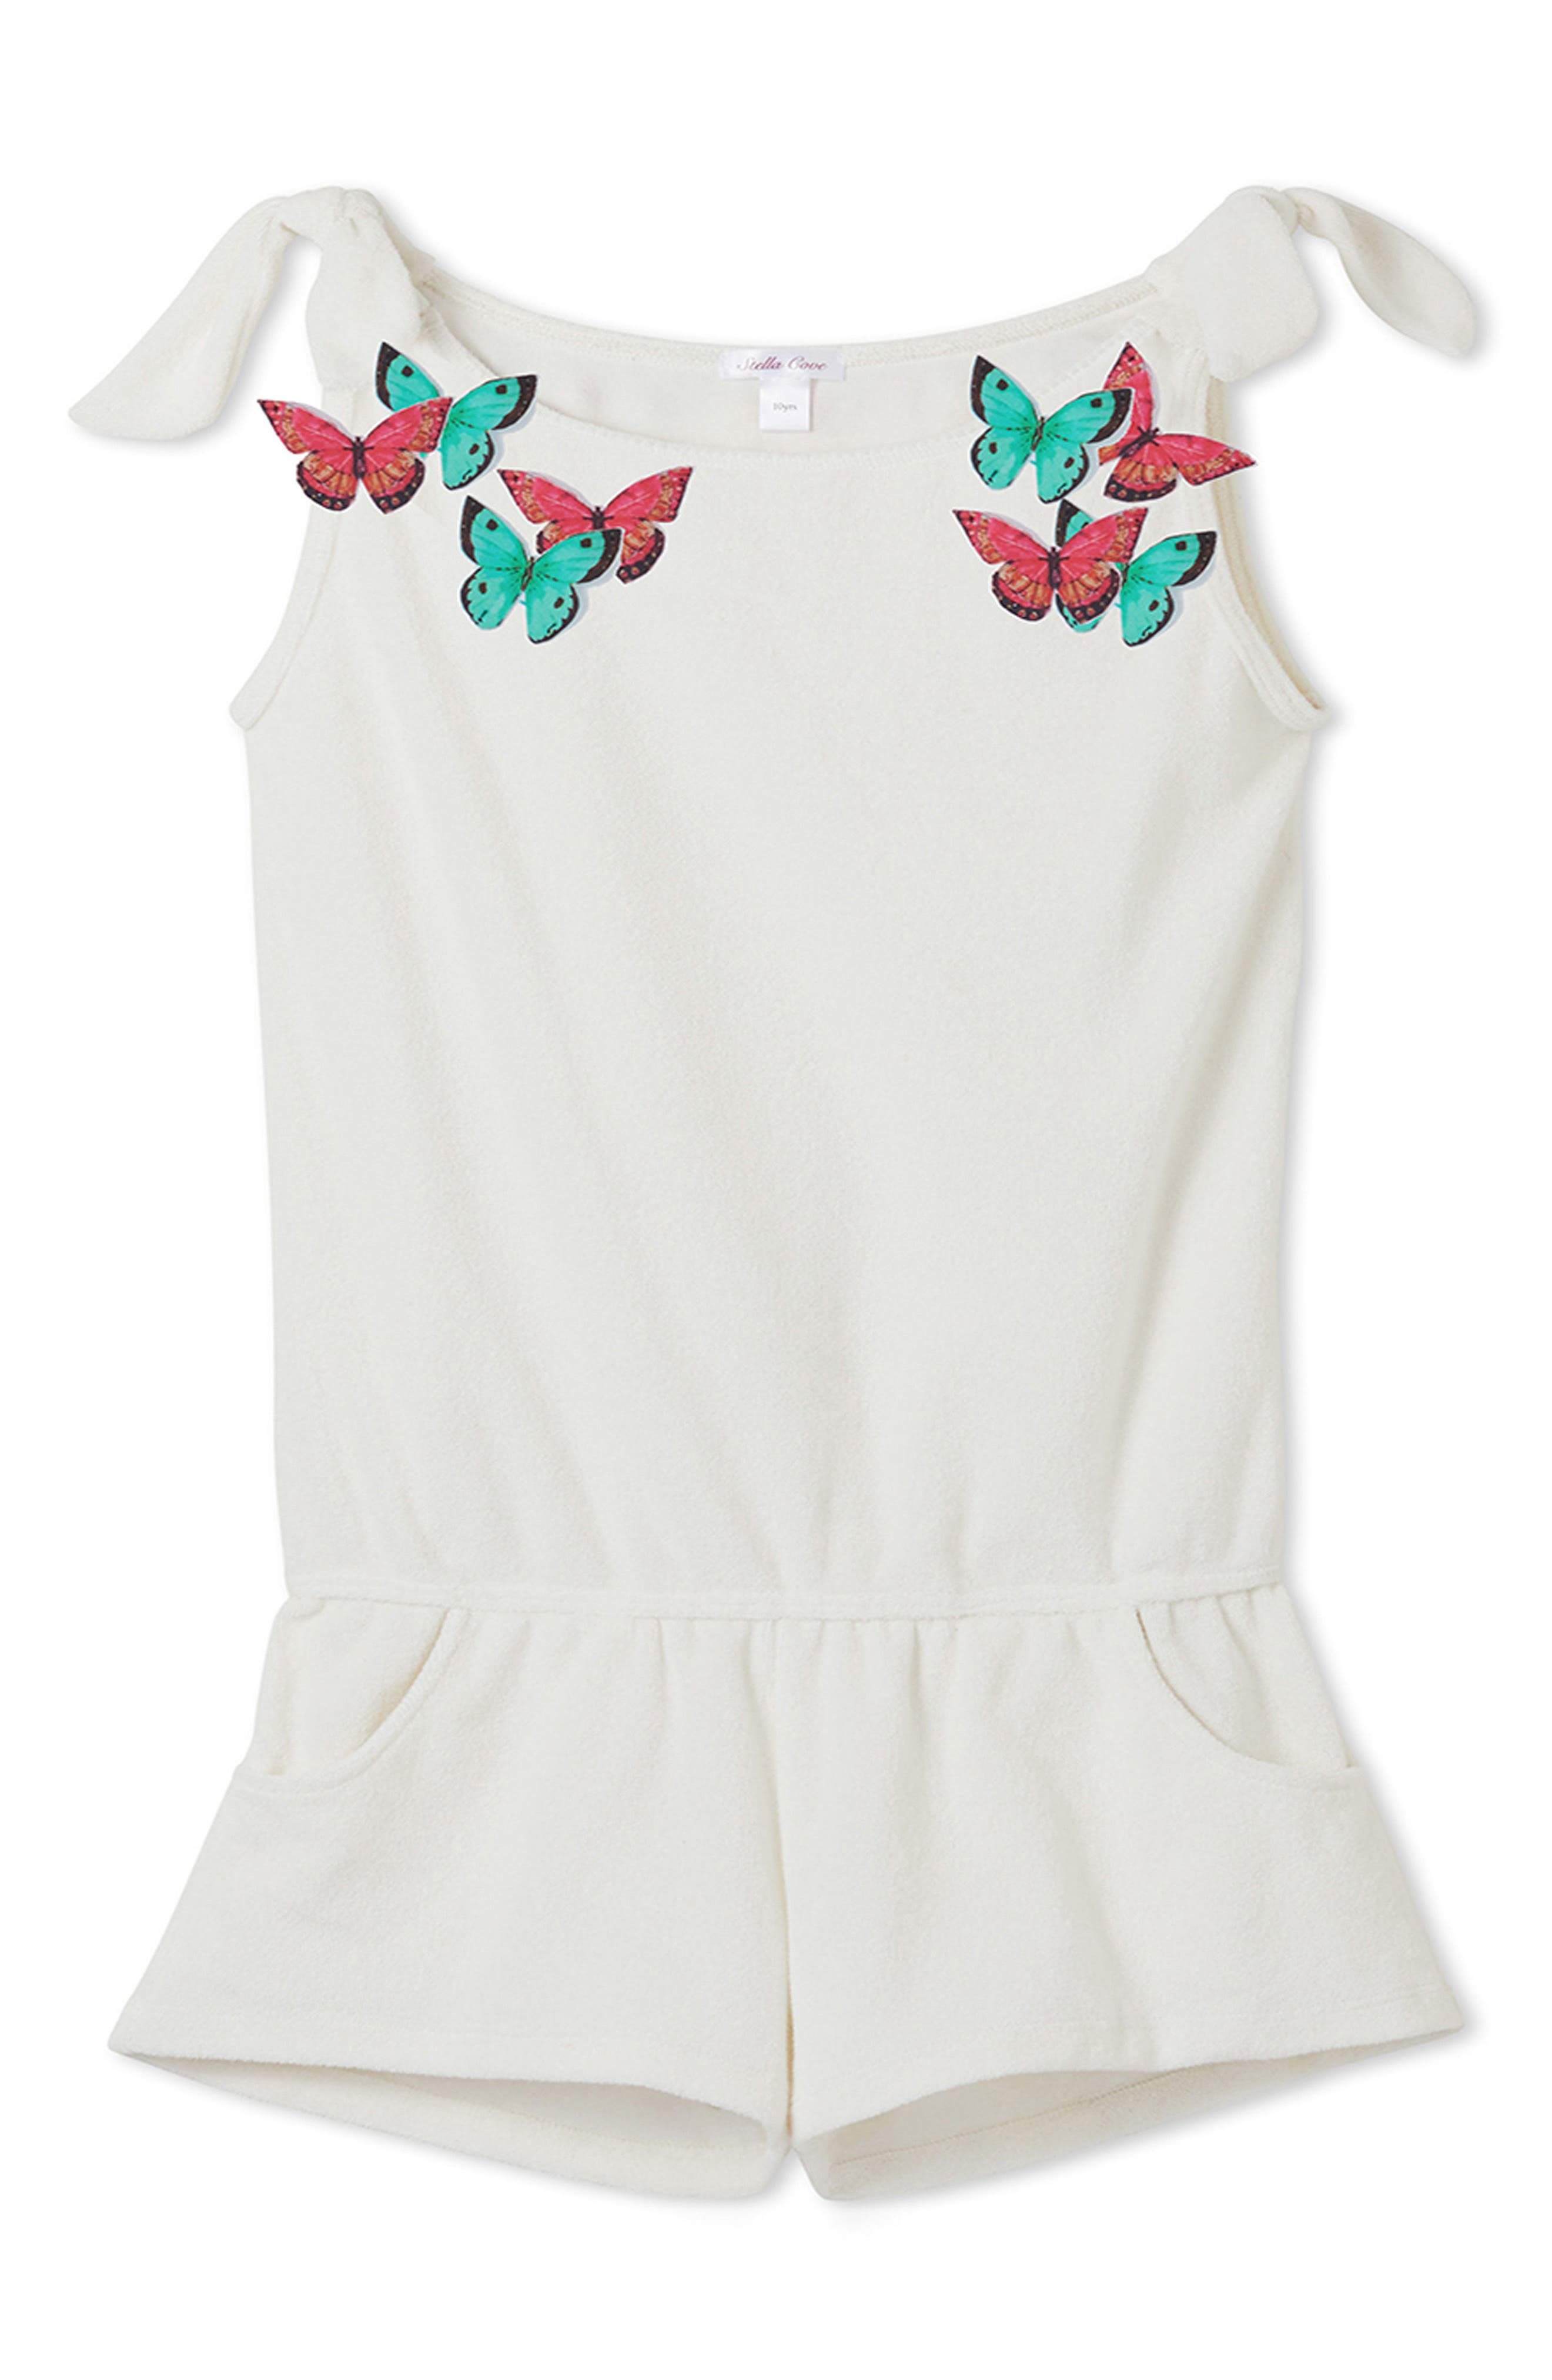 Main Image - Stella Cove Butterfly Cover-Up Romper (Toddler Girls & Little Girls)